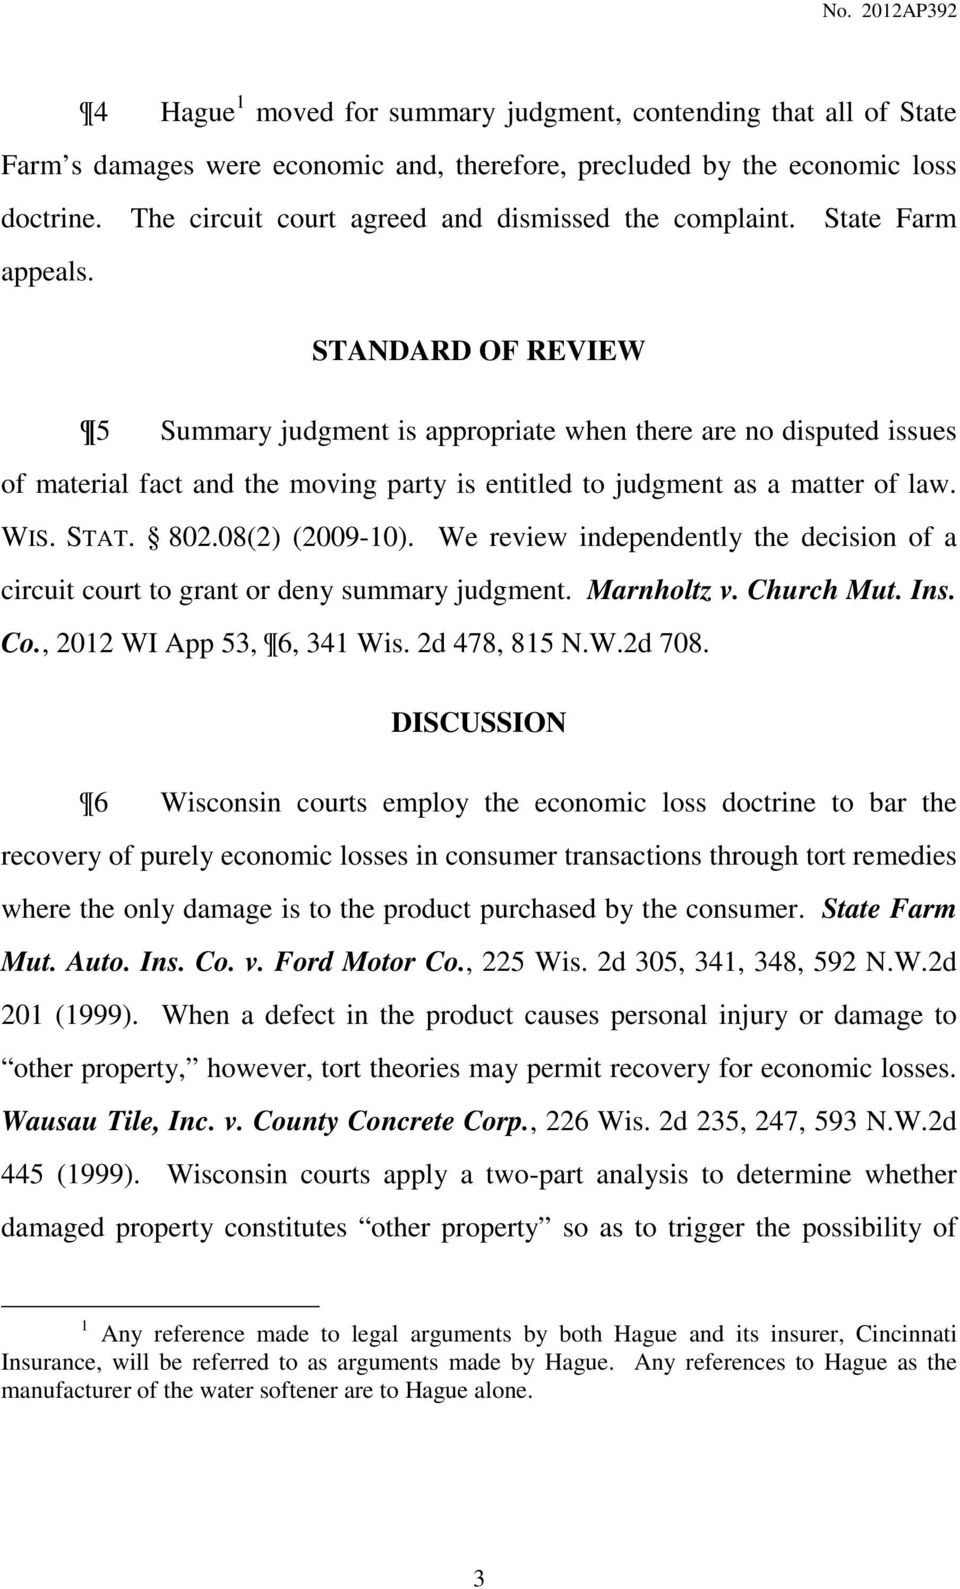 STANDARD OF REVIEW 5 Summary judgment is appropriate when there are no disputed issues of material fact and the moving party is entitled to judgment as a matter of law. WIS. STAT. 802.08(2) (2009-10).